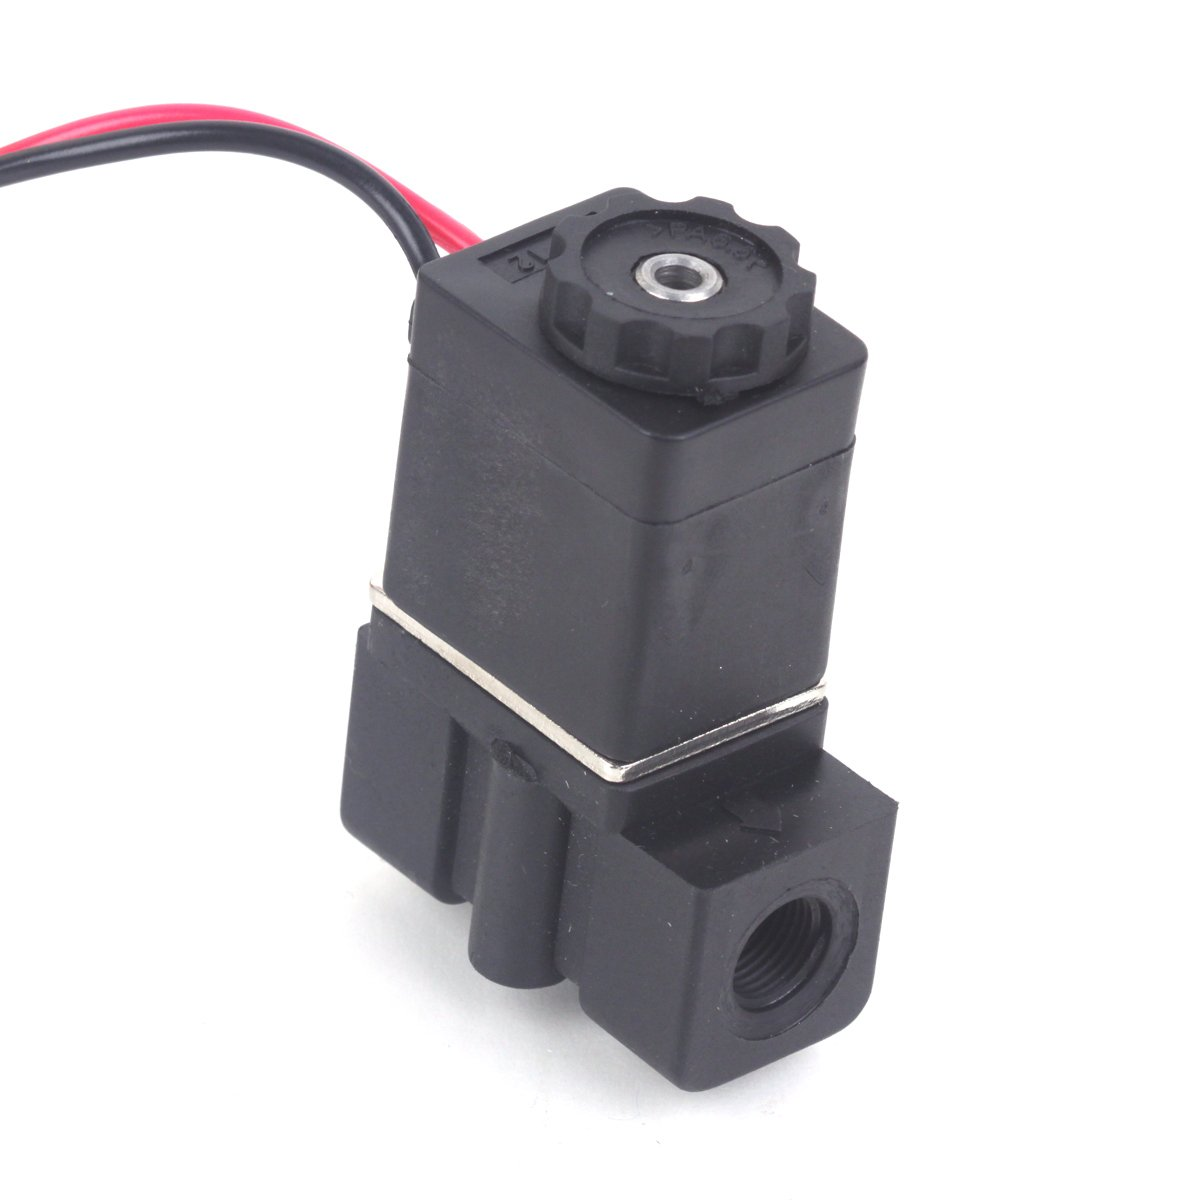 12V DC 1/4'' Inch N/C Normally Closed Plastic Electric Air Gas Water Solenoid Valve